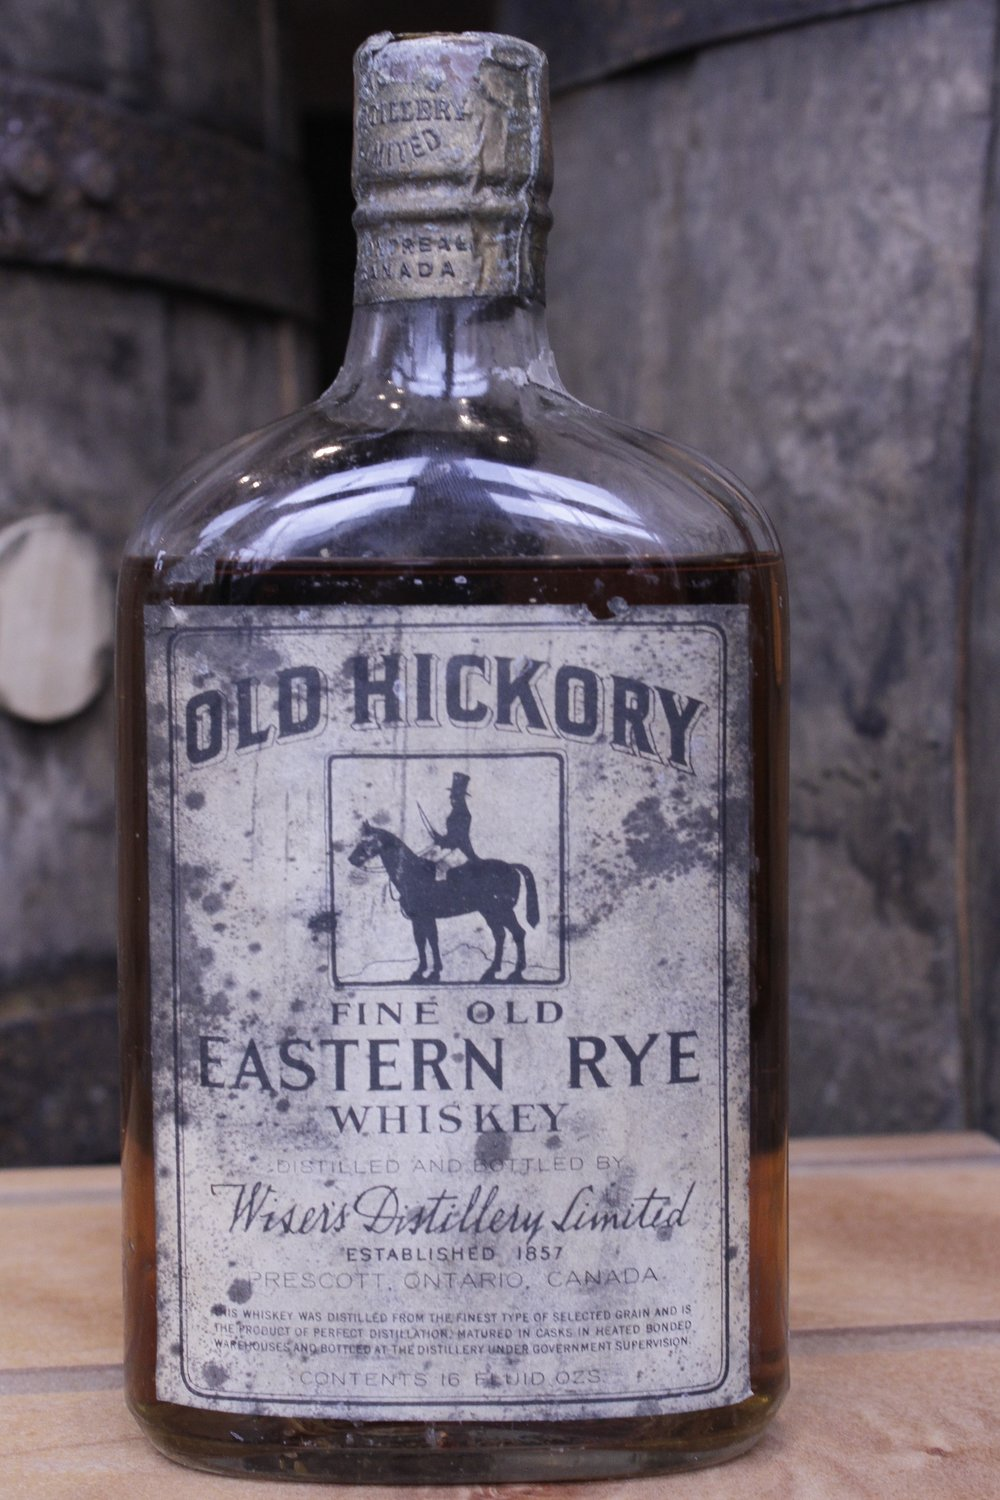 OLD HICKORY FINE OLD EASTERN RYE WHISKEY    About the Product   One pint of rye whiskey, bottled in bond. Distilled by Wiser's Distillery Limited, and bottled in 1925 by Wiser's Distiller Limited.  The product of perfect distillation, this whiskey was distilled from the finest type of selected grain, matured in casks in heated bonded warehouses, and bottled at the distillery under government supervision. The bottle's markings indicate that it was wax-dipped in Montreal and sealed in Ottawa.   About the Distillery   Wiser's Distillery Limited (1857 – 1924); Canadian Industrial Alcohol Co. (c. 1924). Prescott, Ontario, Canada.  Established in 1857 in Prescott, Ontario, JP Wiser's Distillery Limited was acquired by the Canadian Industrial Alcohol Company in 1924. This parent organization moved the distillery's operations to Corbyville, Ontario.